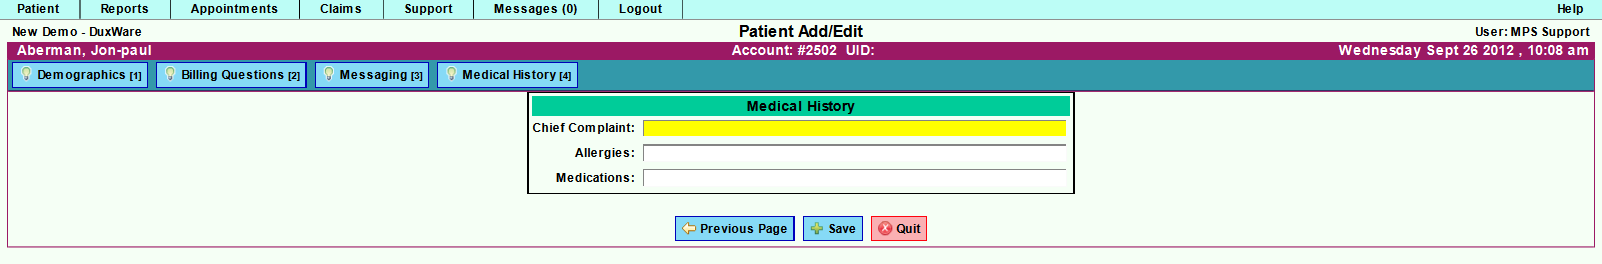 Patient Add Edit - 4th page.png